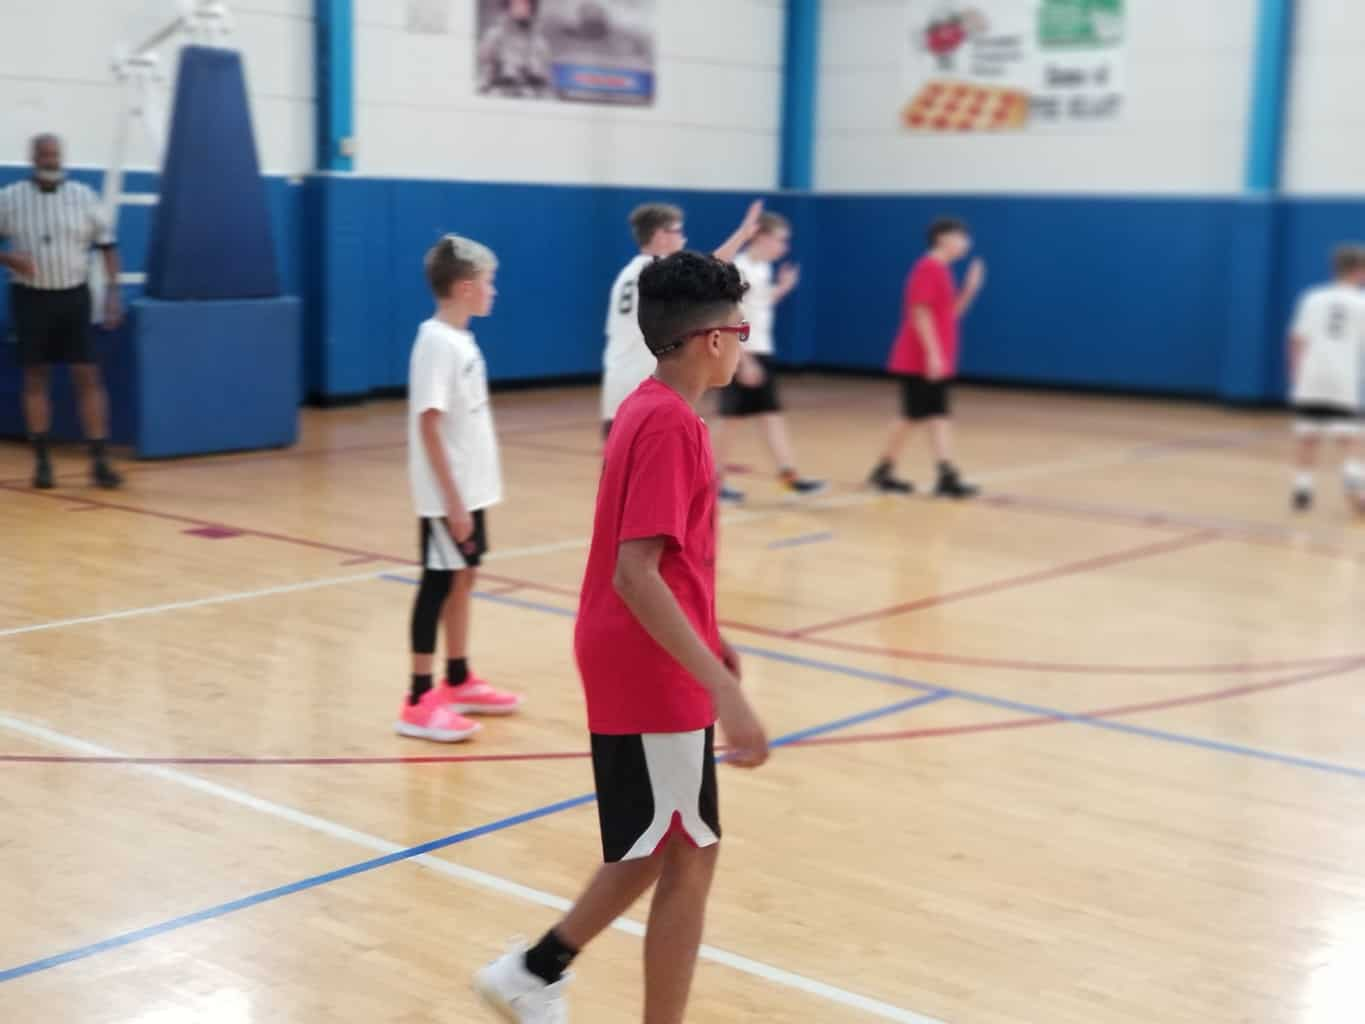 Kids wearing their best basketball shoes in the court